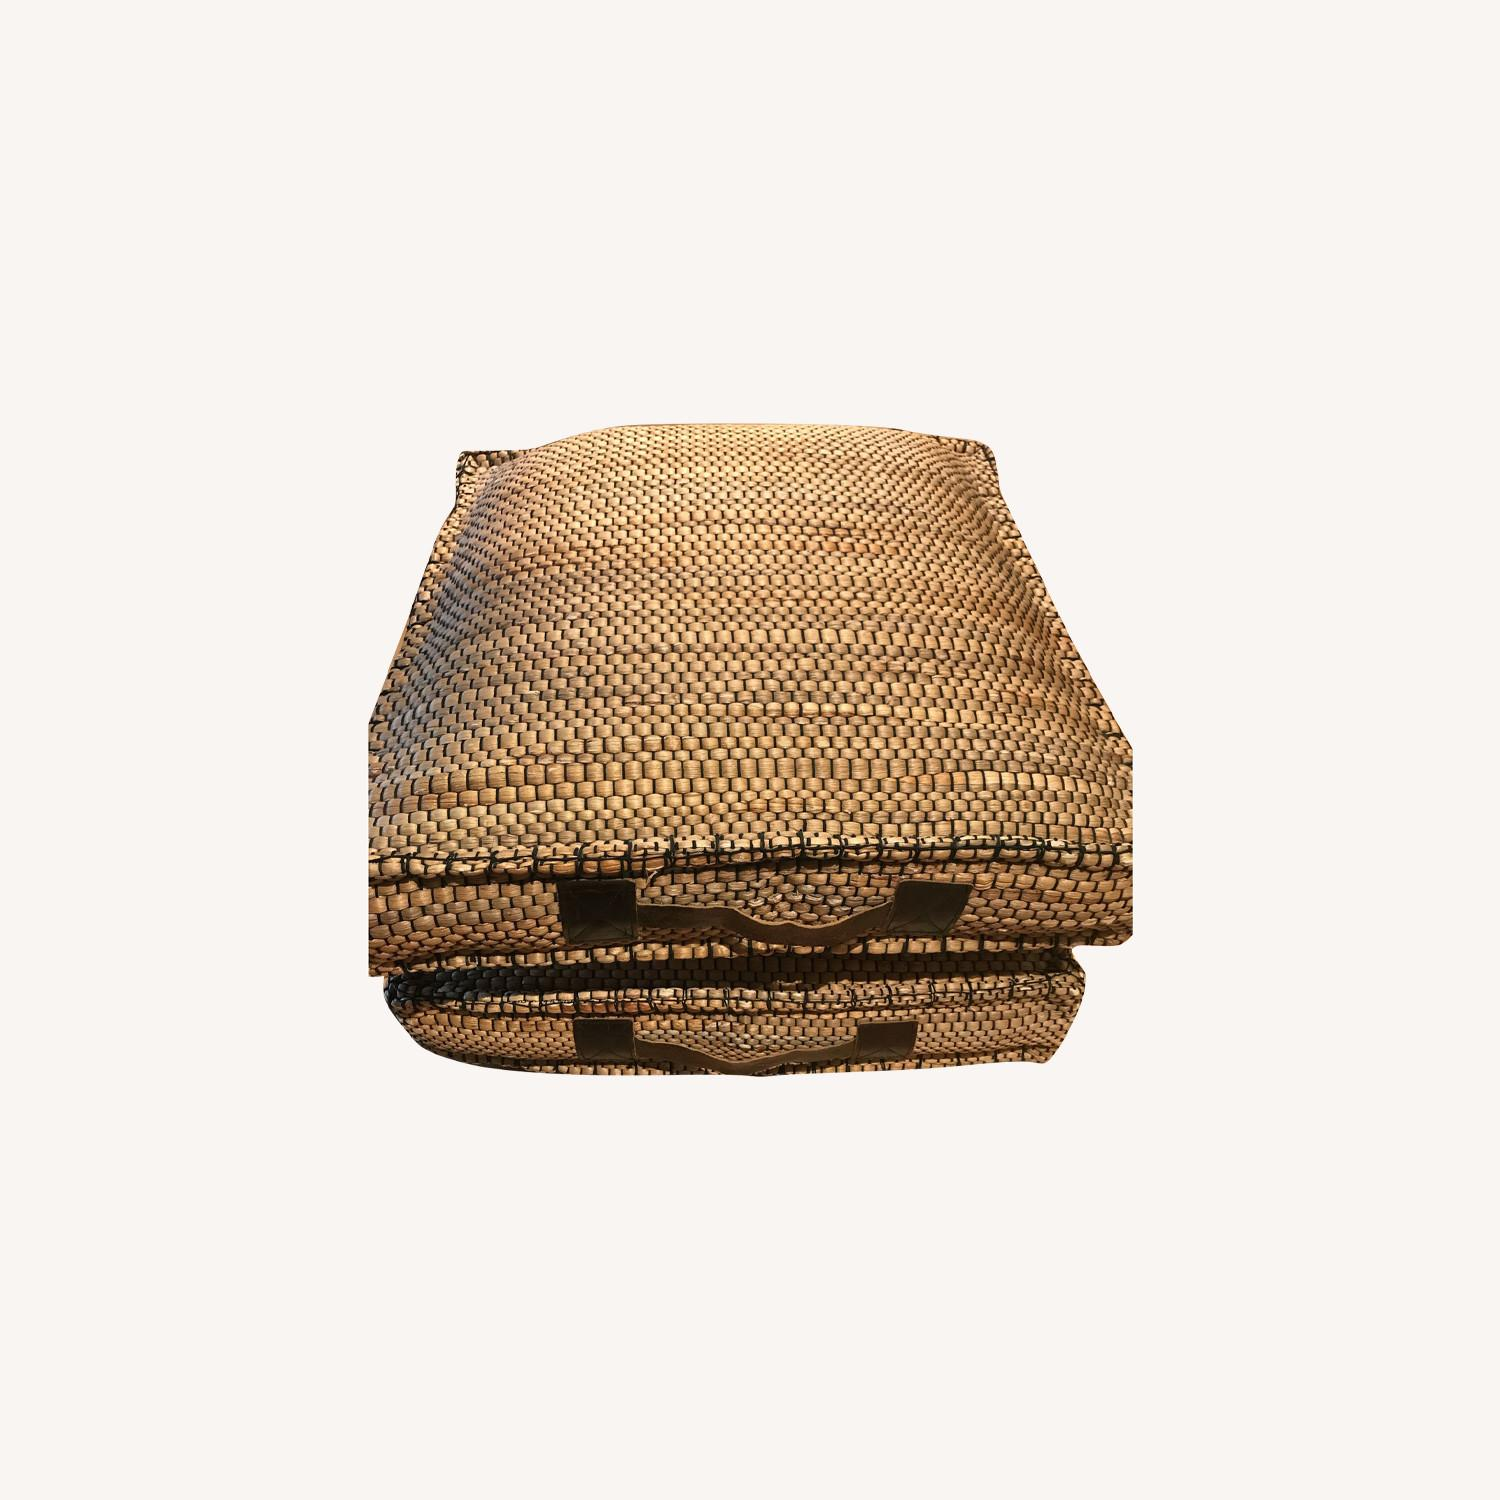 Rattan Cushions for Sitting or Resting